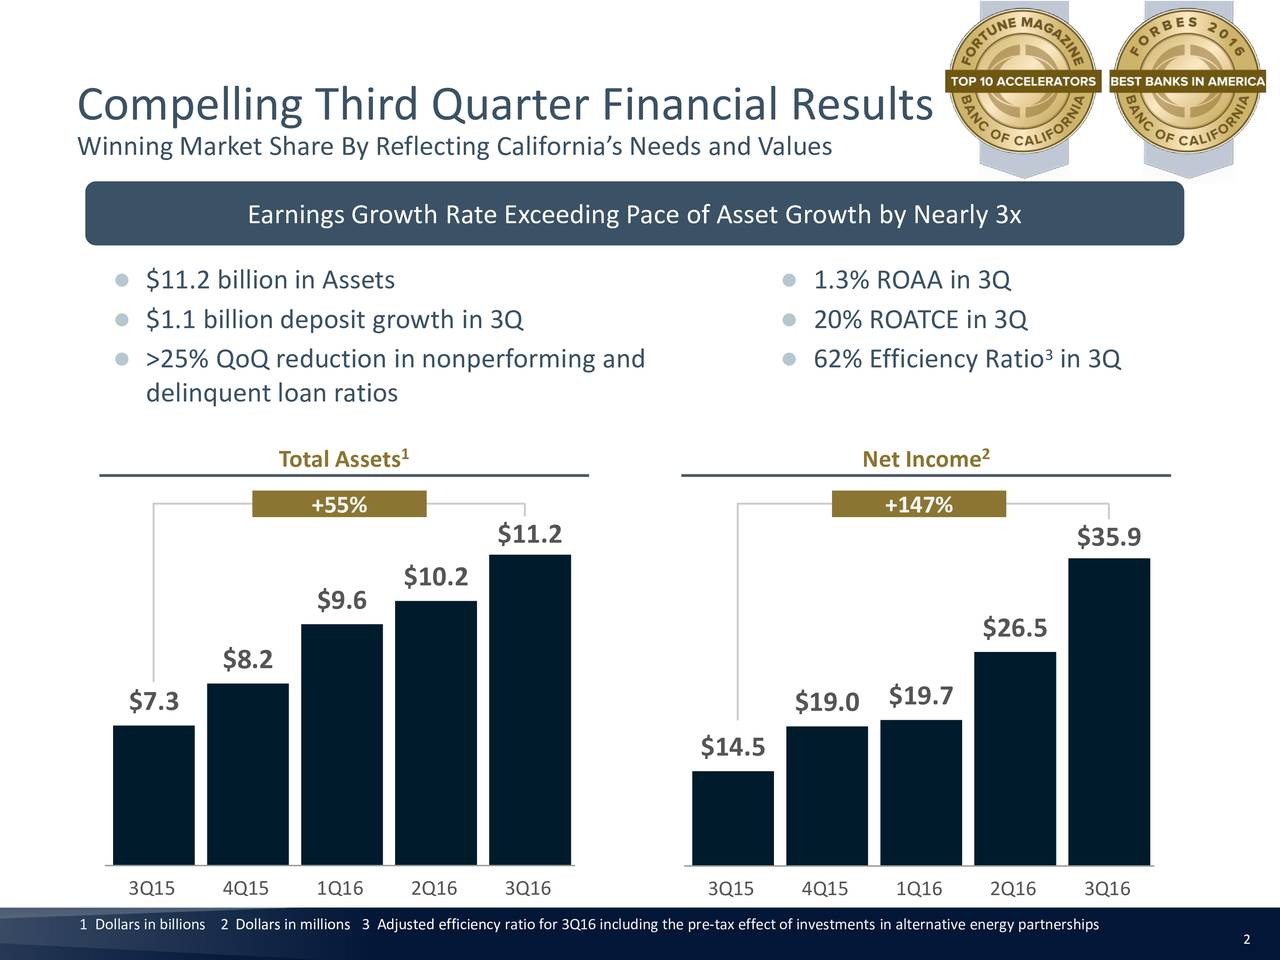 Winning Market Share By Reflecting Californias Needs and Values Earnings Growth Rate Exceeding Pace of Asset Growth by Nearly 3x $11.2 billion in Assets  1.3% ROAA in 3Q $1.1 billion deposit growth in 3Q  20% ROATCE in 3Q >25% QoQ reduction in nonperforming and  62% Efficiency Ratio in 3Q delinquent loan ratios Total Assets Net Income2 +55% +147% $11.2 $35.9 $10.2 $9.6 $26.5 $8.2 $19.7 $7.3 $19.0 $14.5 3Q15 4Q15 1Q16 2Q16 3Q16 3Q15 4Q15 1Q16 2Q16 3Q16 1 Dollars in billions 2 Dollars in millions 3 Adjusted efficiency ratio for 3Q16 including the pre2tax effect of investments in alternative energy partnerships